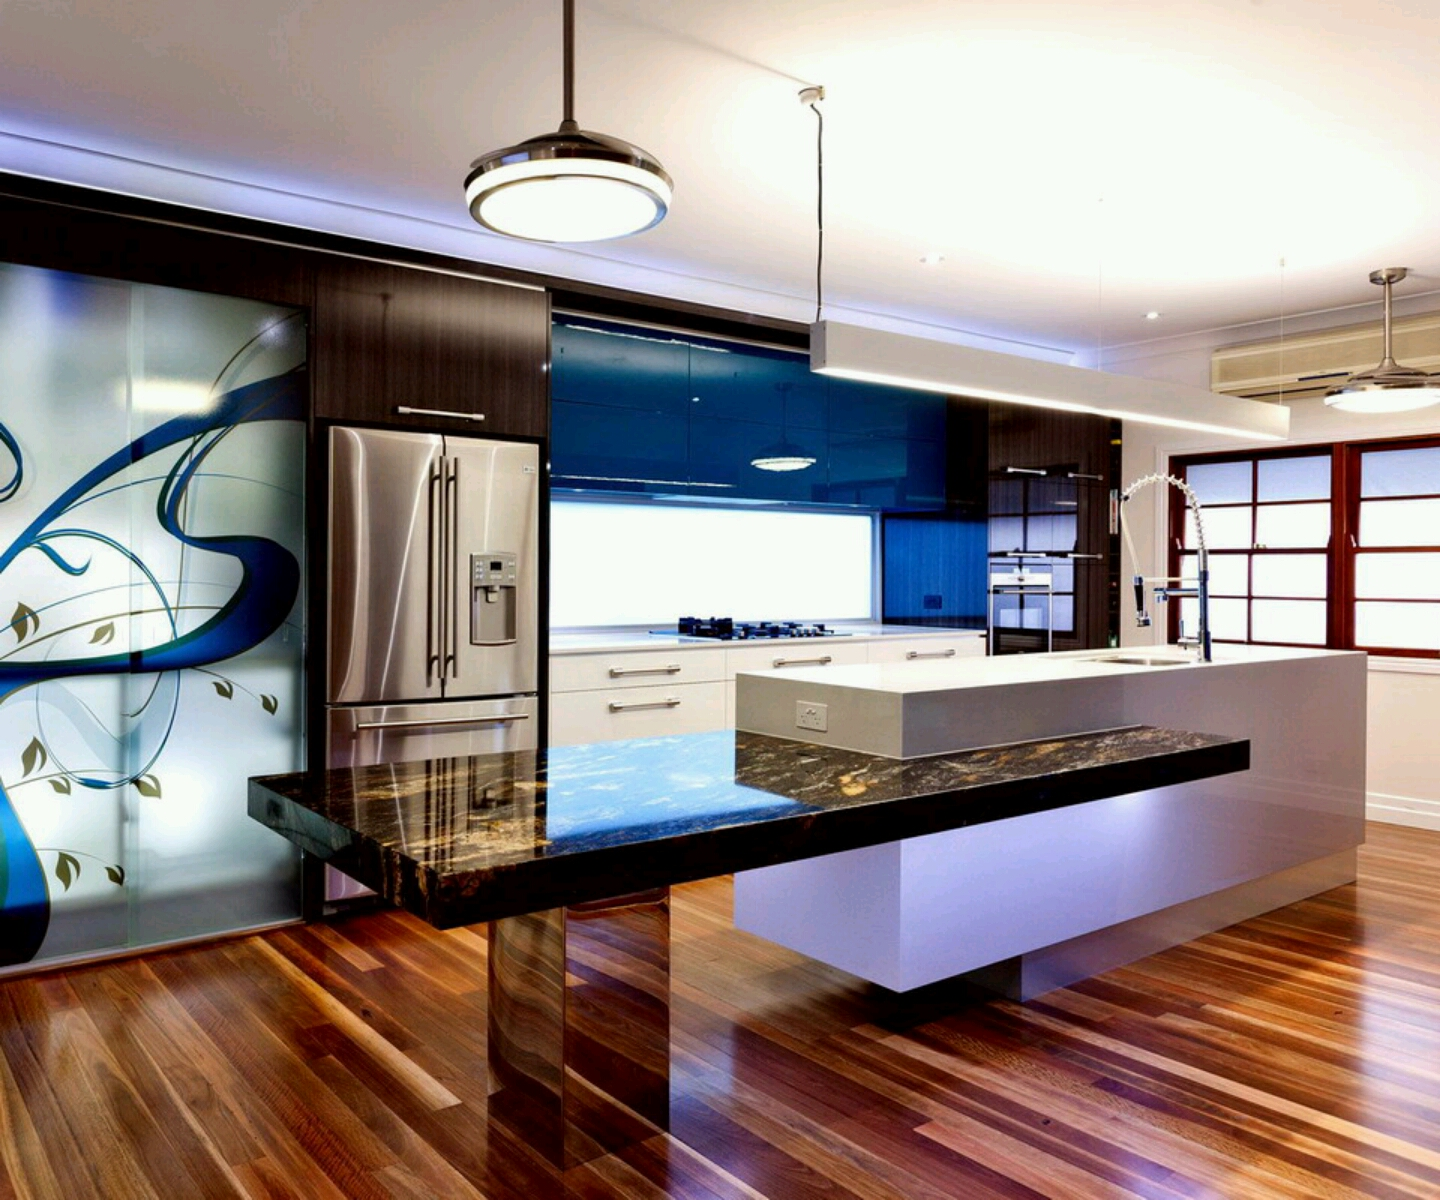 House Interior Design Kitchen: New Home Designs Latest.: Ultra Modern Kitchen Designs Ideas